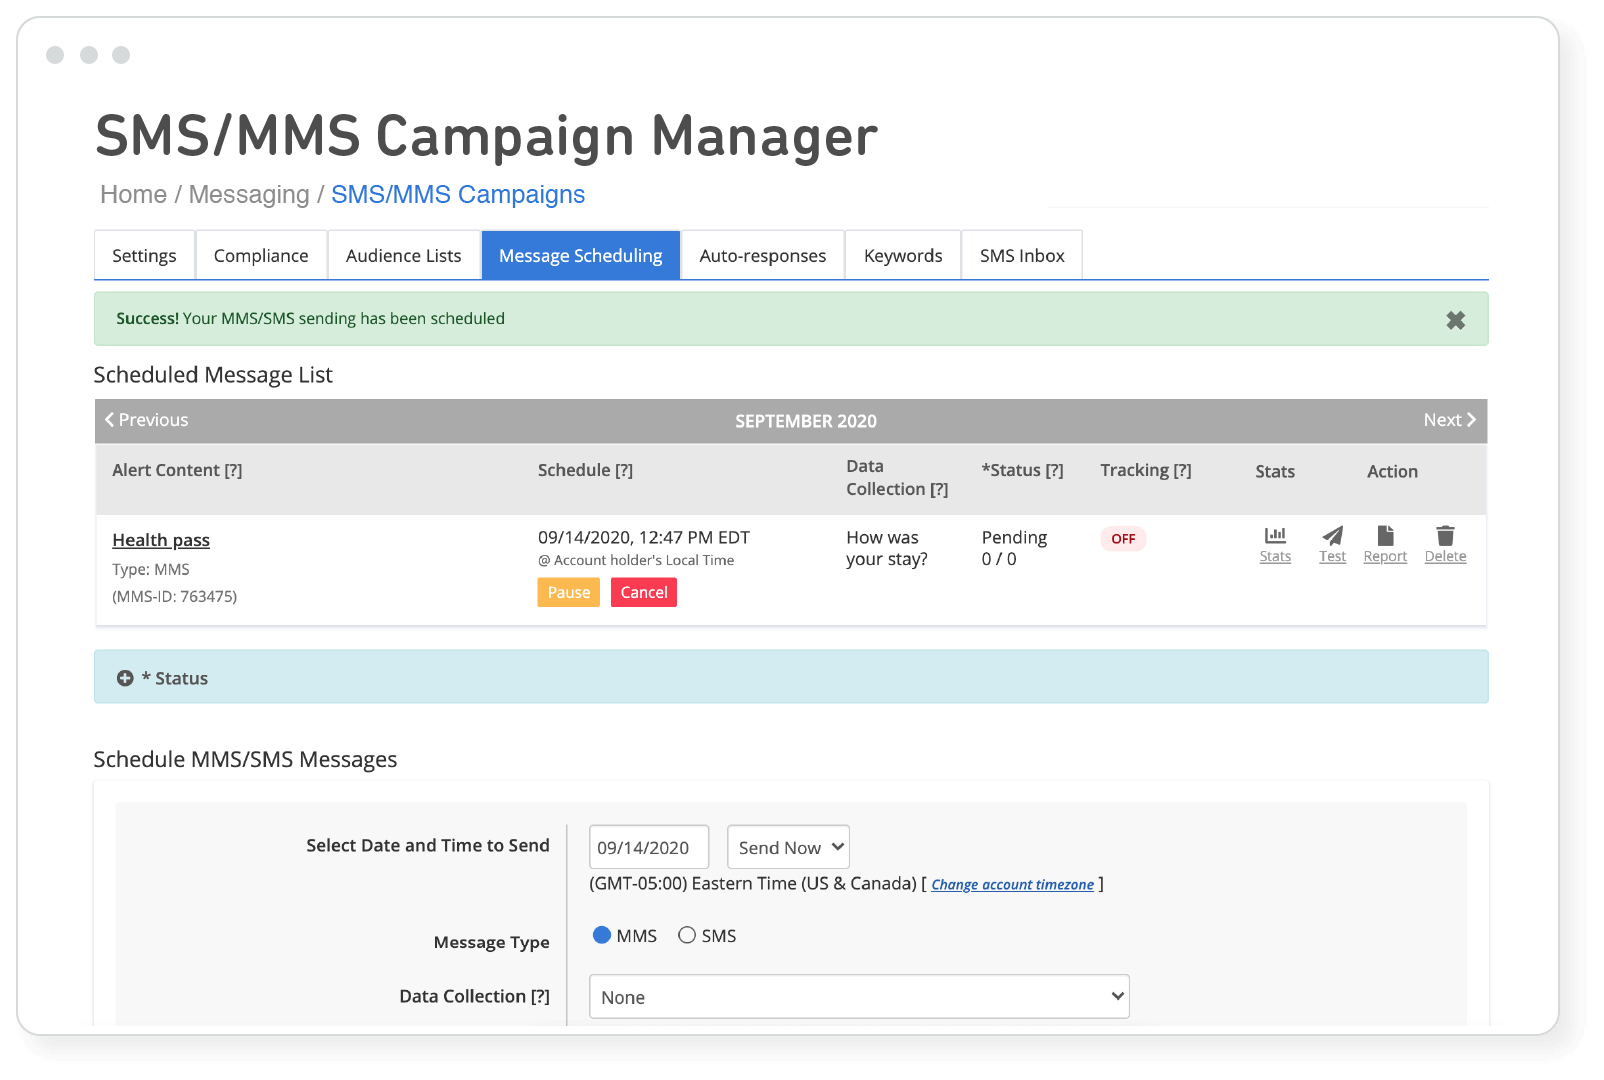 sms mms campaign manager scheduling